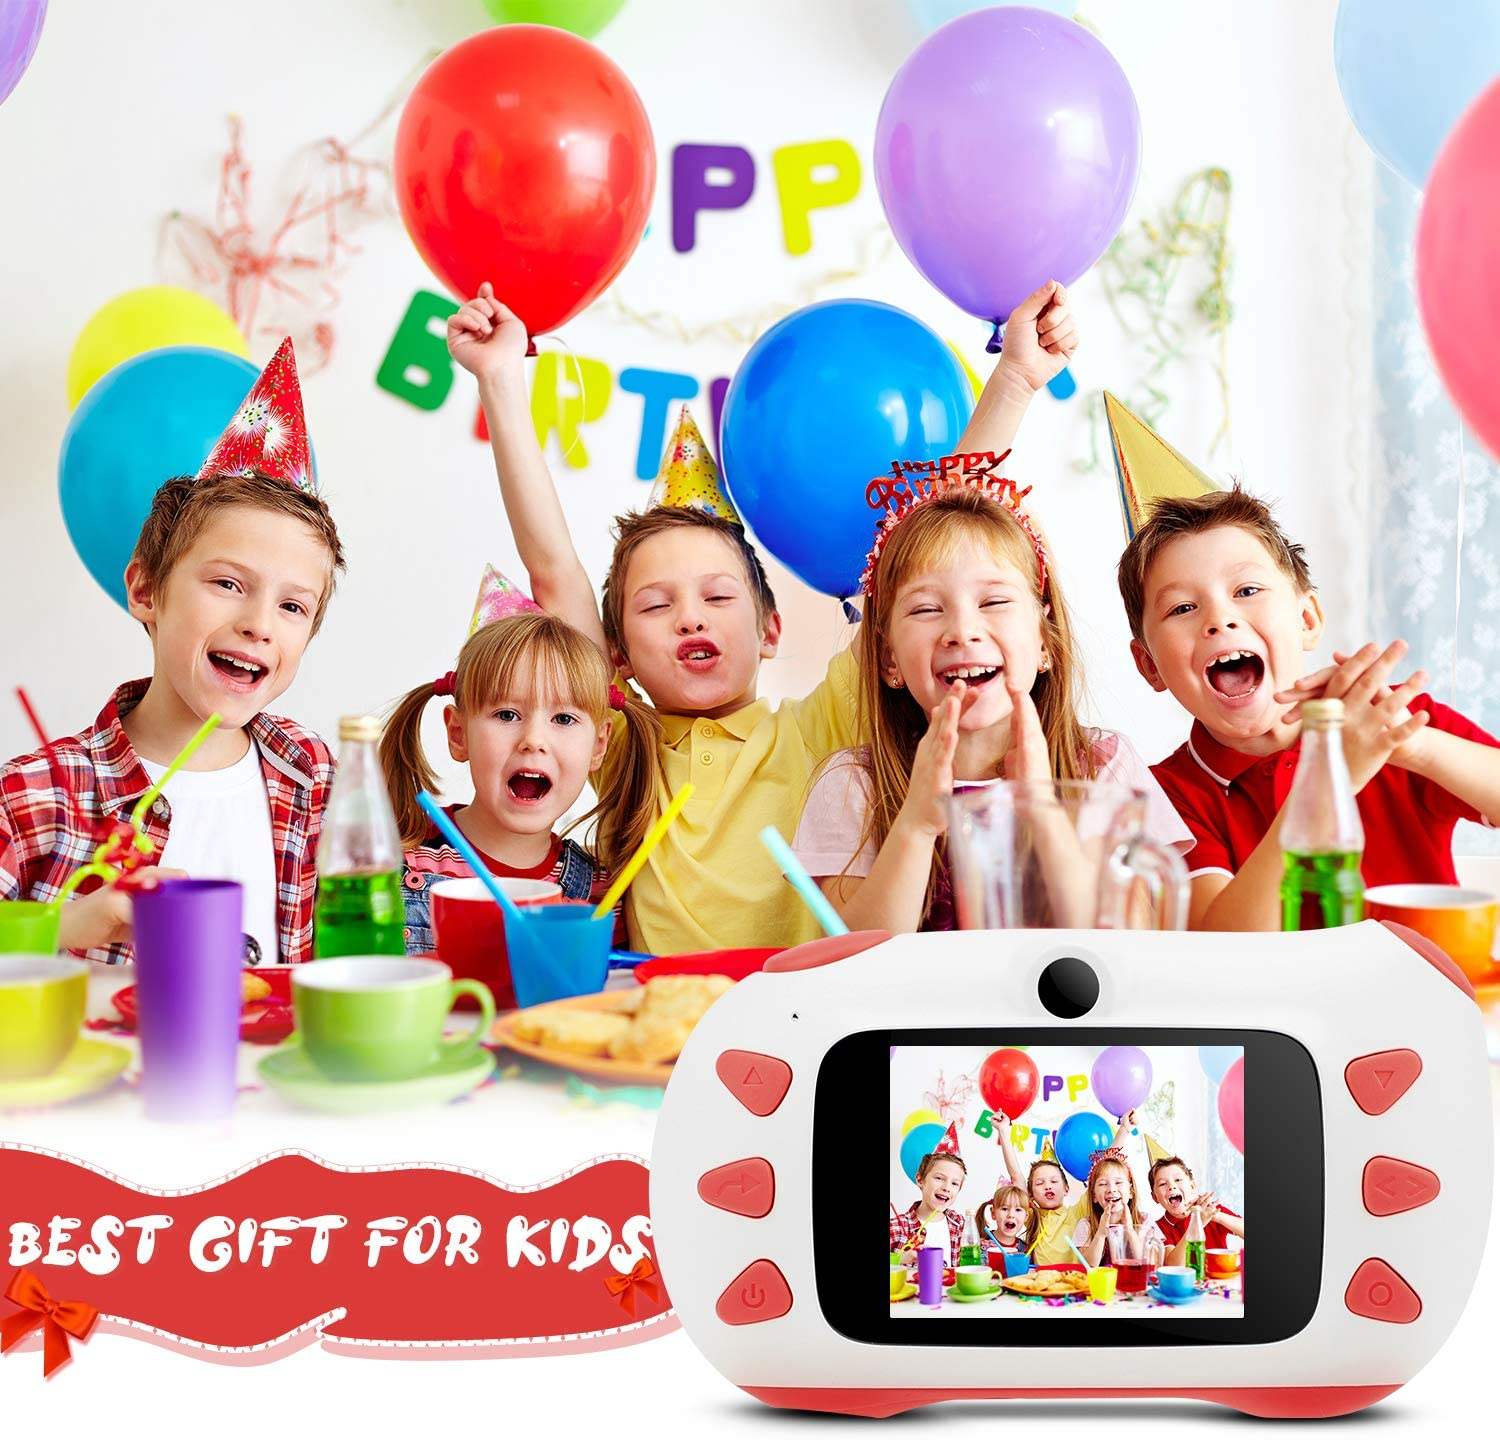 Kids Camera,RUMIA Shockproof Digital Video for Boys and Girls,1080P HD Children Action Camera Portable Rechargeable Toddler Video Recorder for Birthday Day Gifts